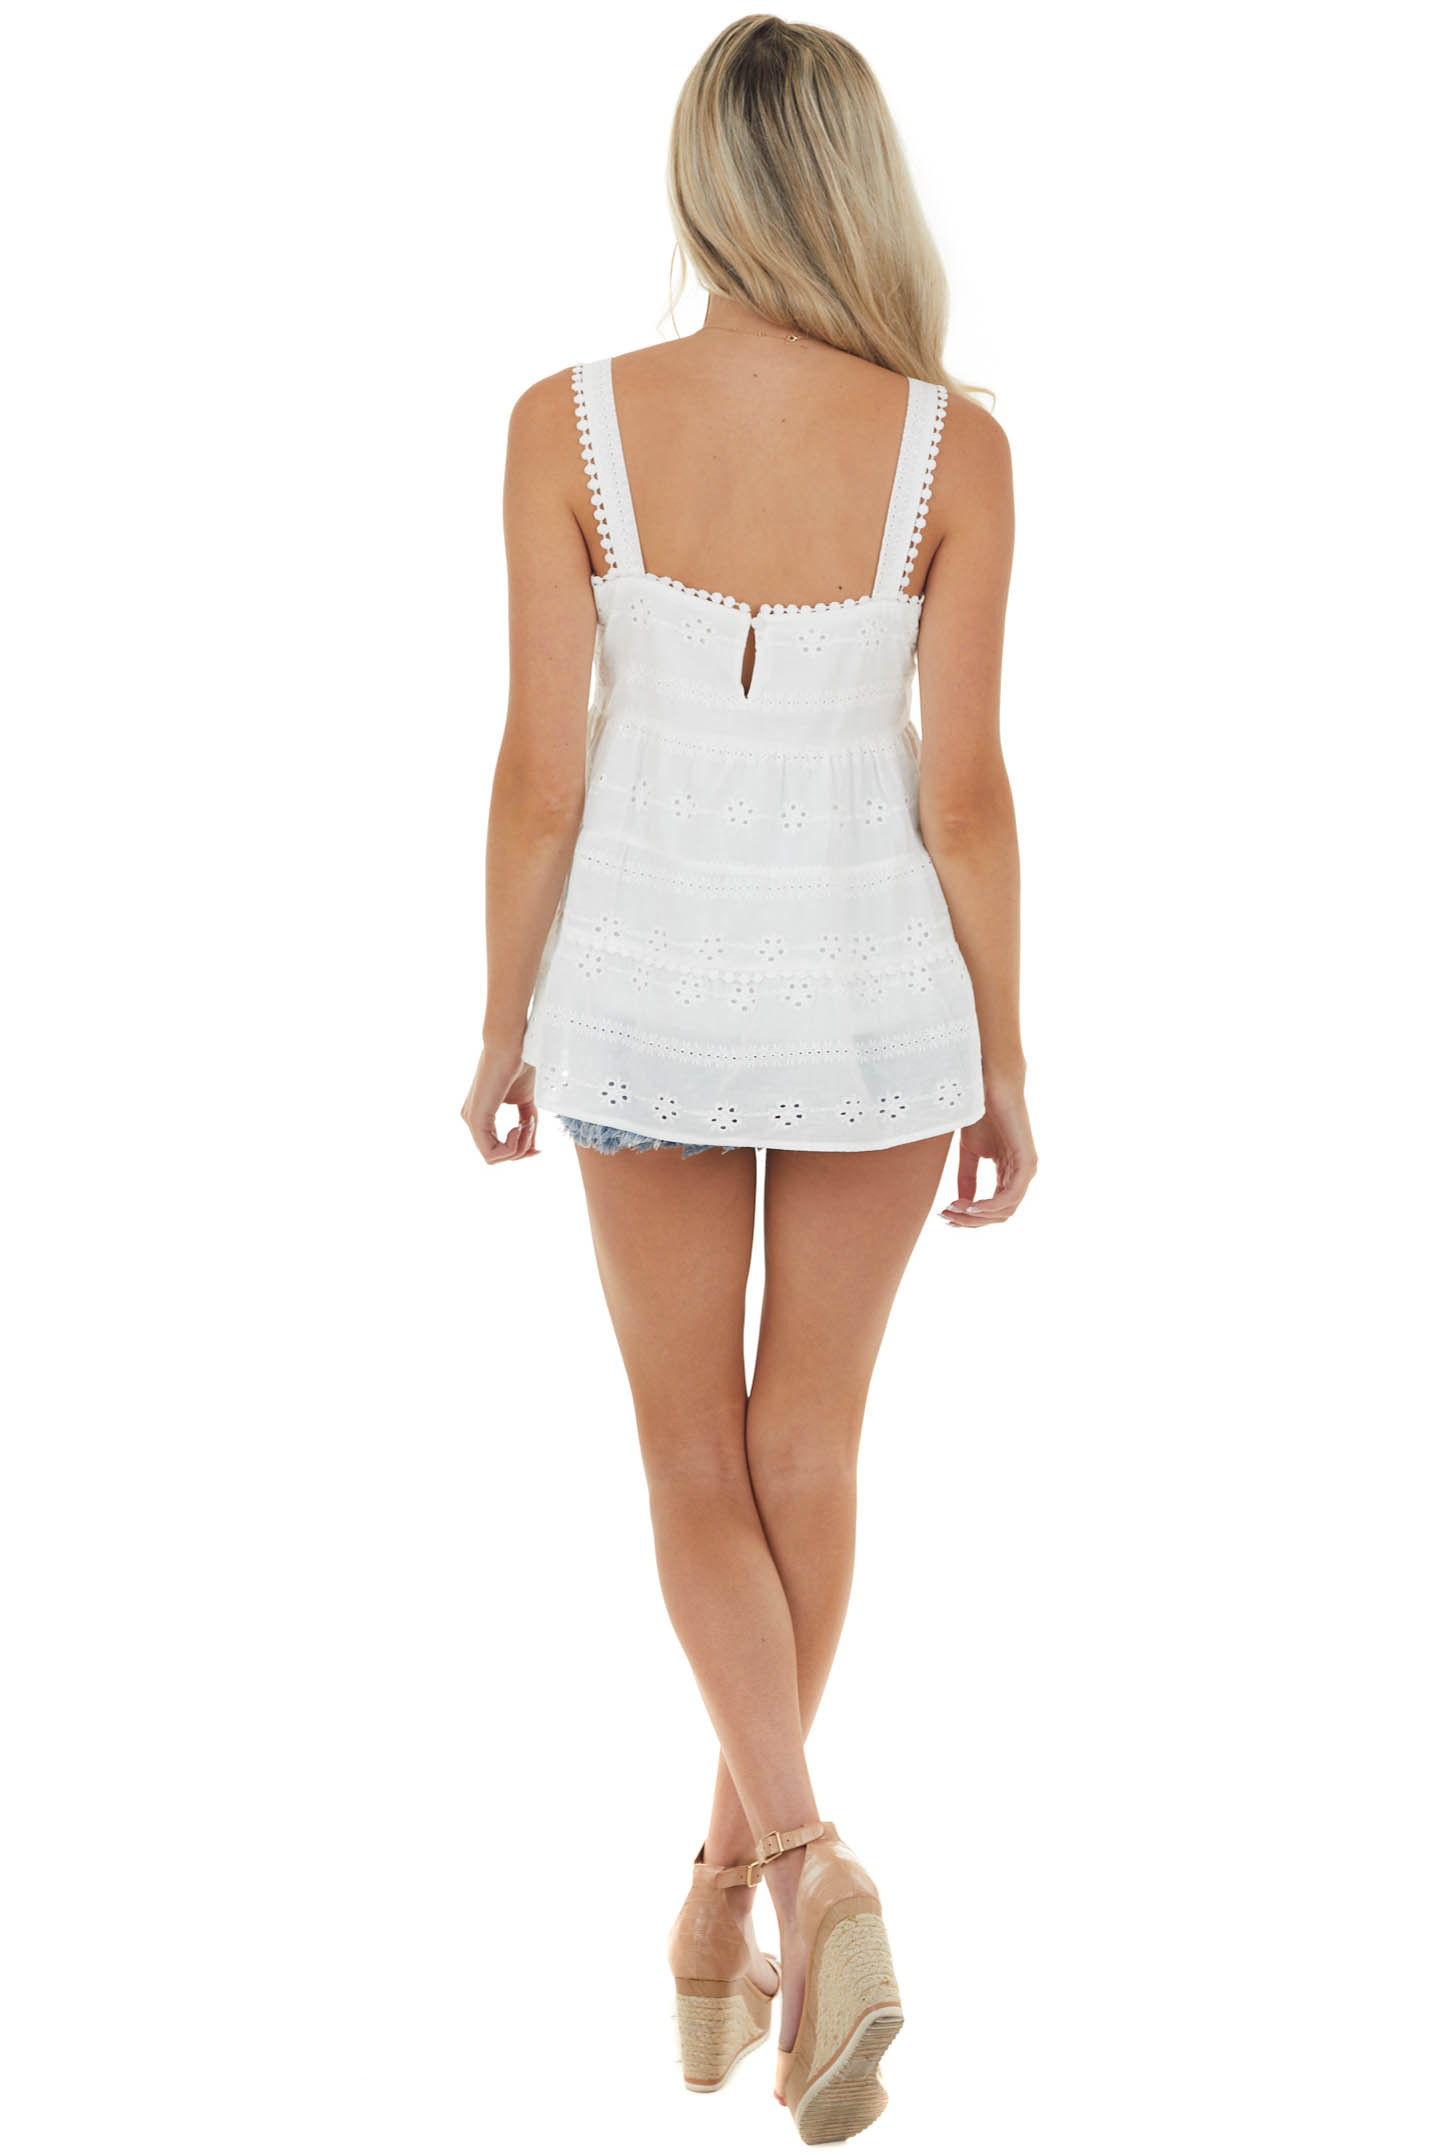 Off White Babydoll Sleeveless Tiered Eyelet Lace Woven Top